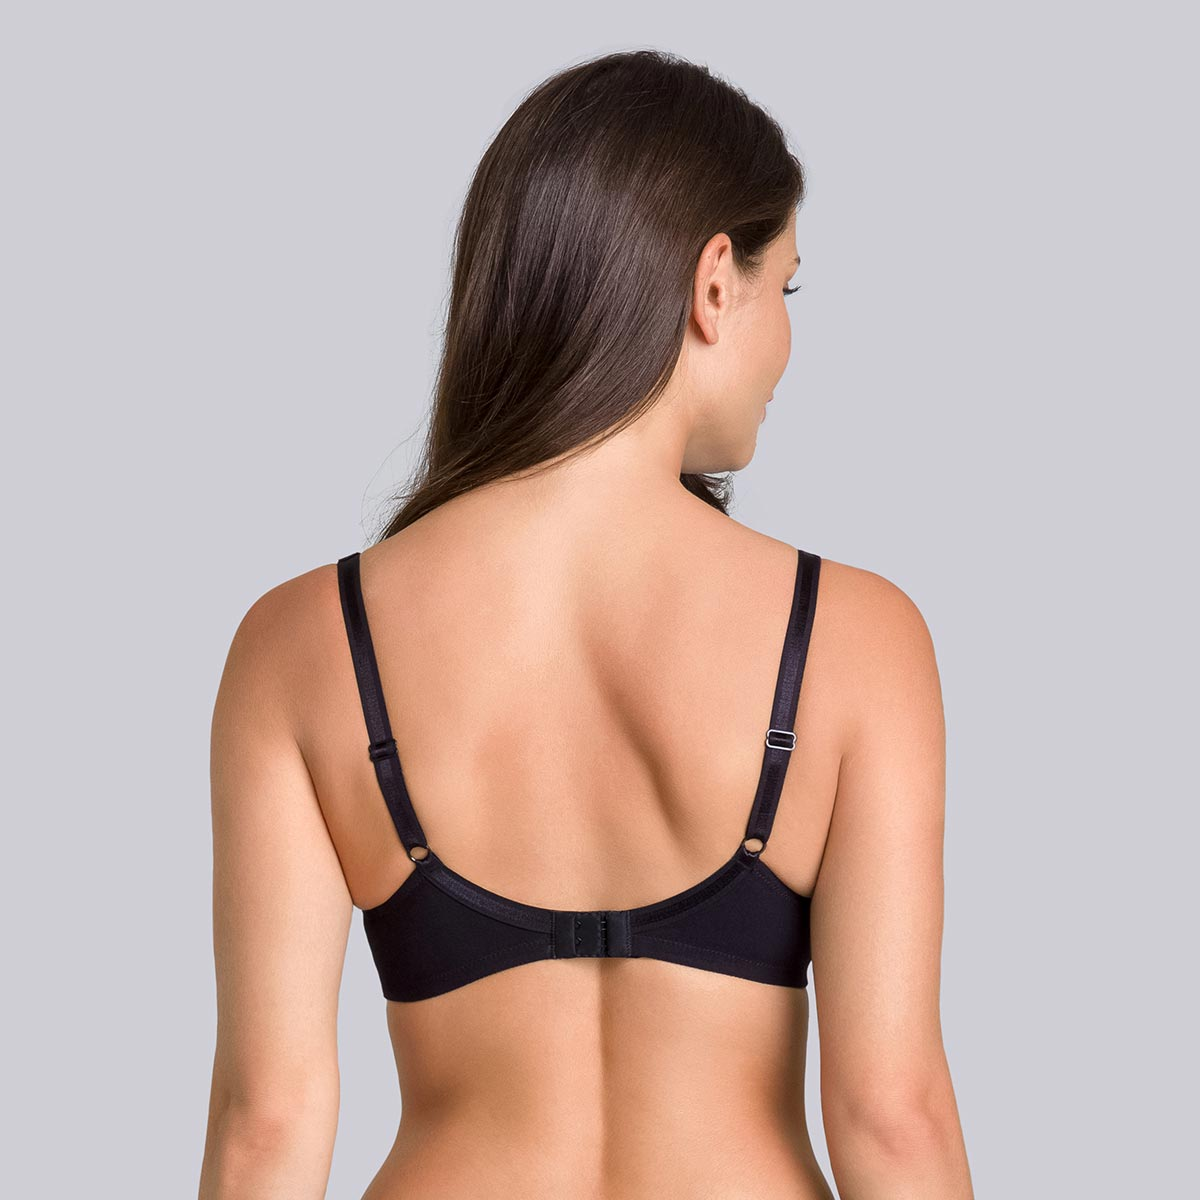 Reggiseno senza ferretto nero - Cotton Support - PLAYTEX